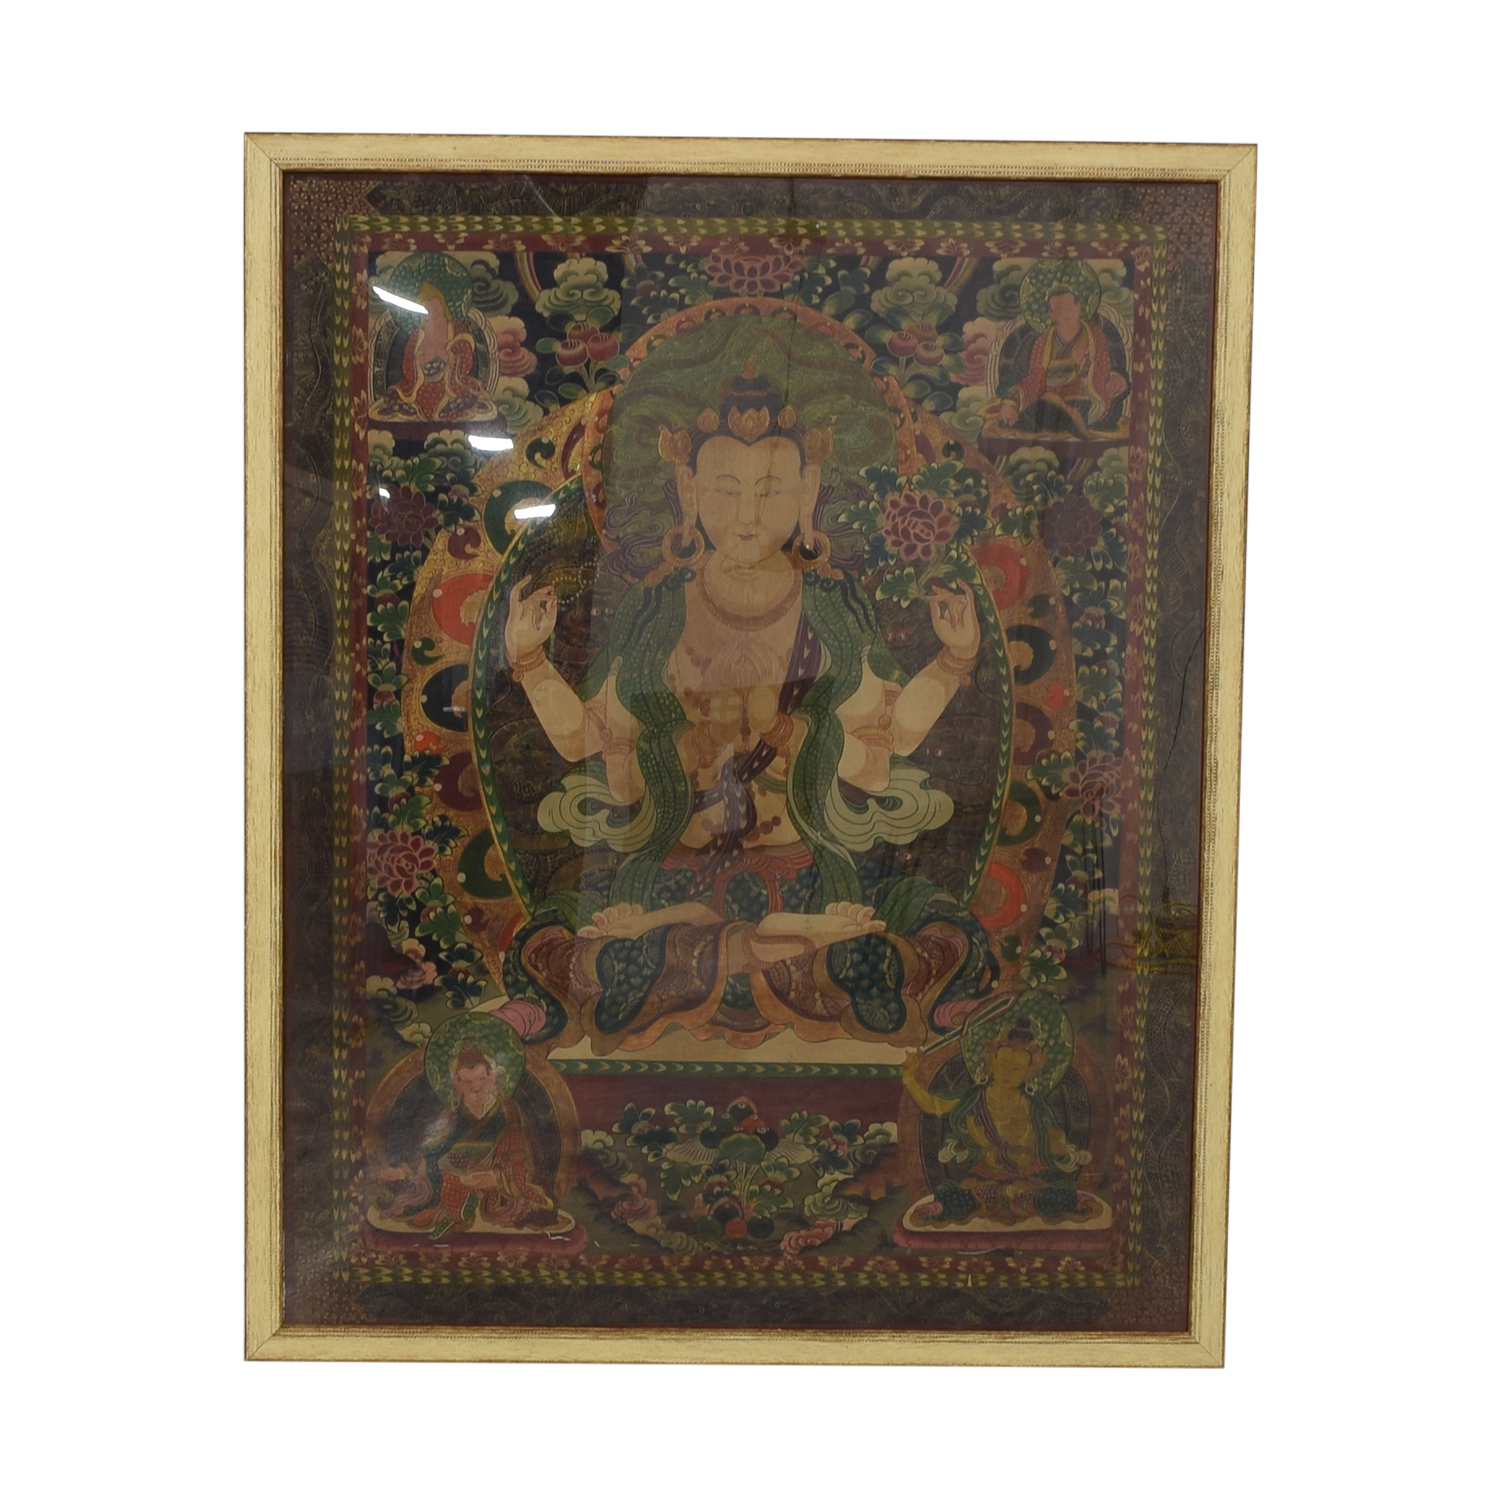 Framed Thangka Wall Art / Decor